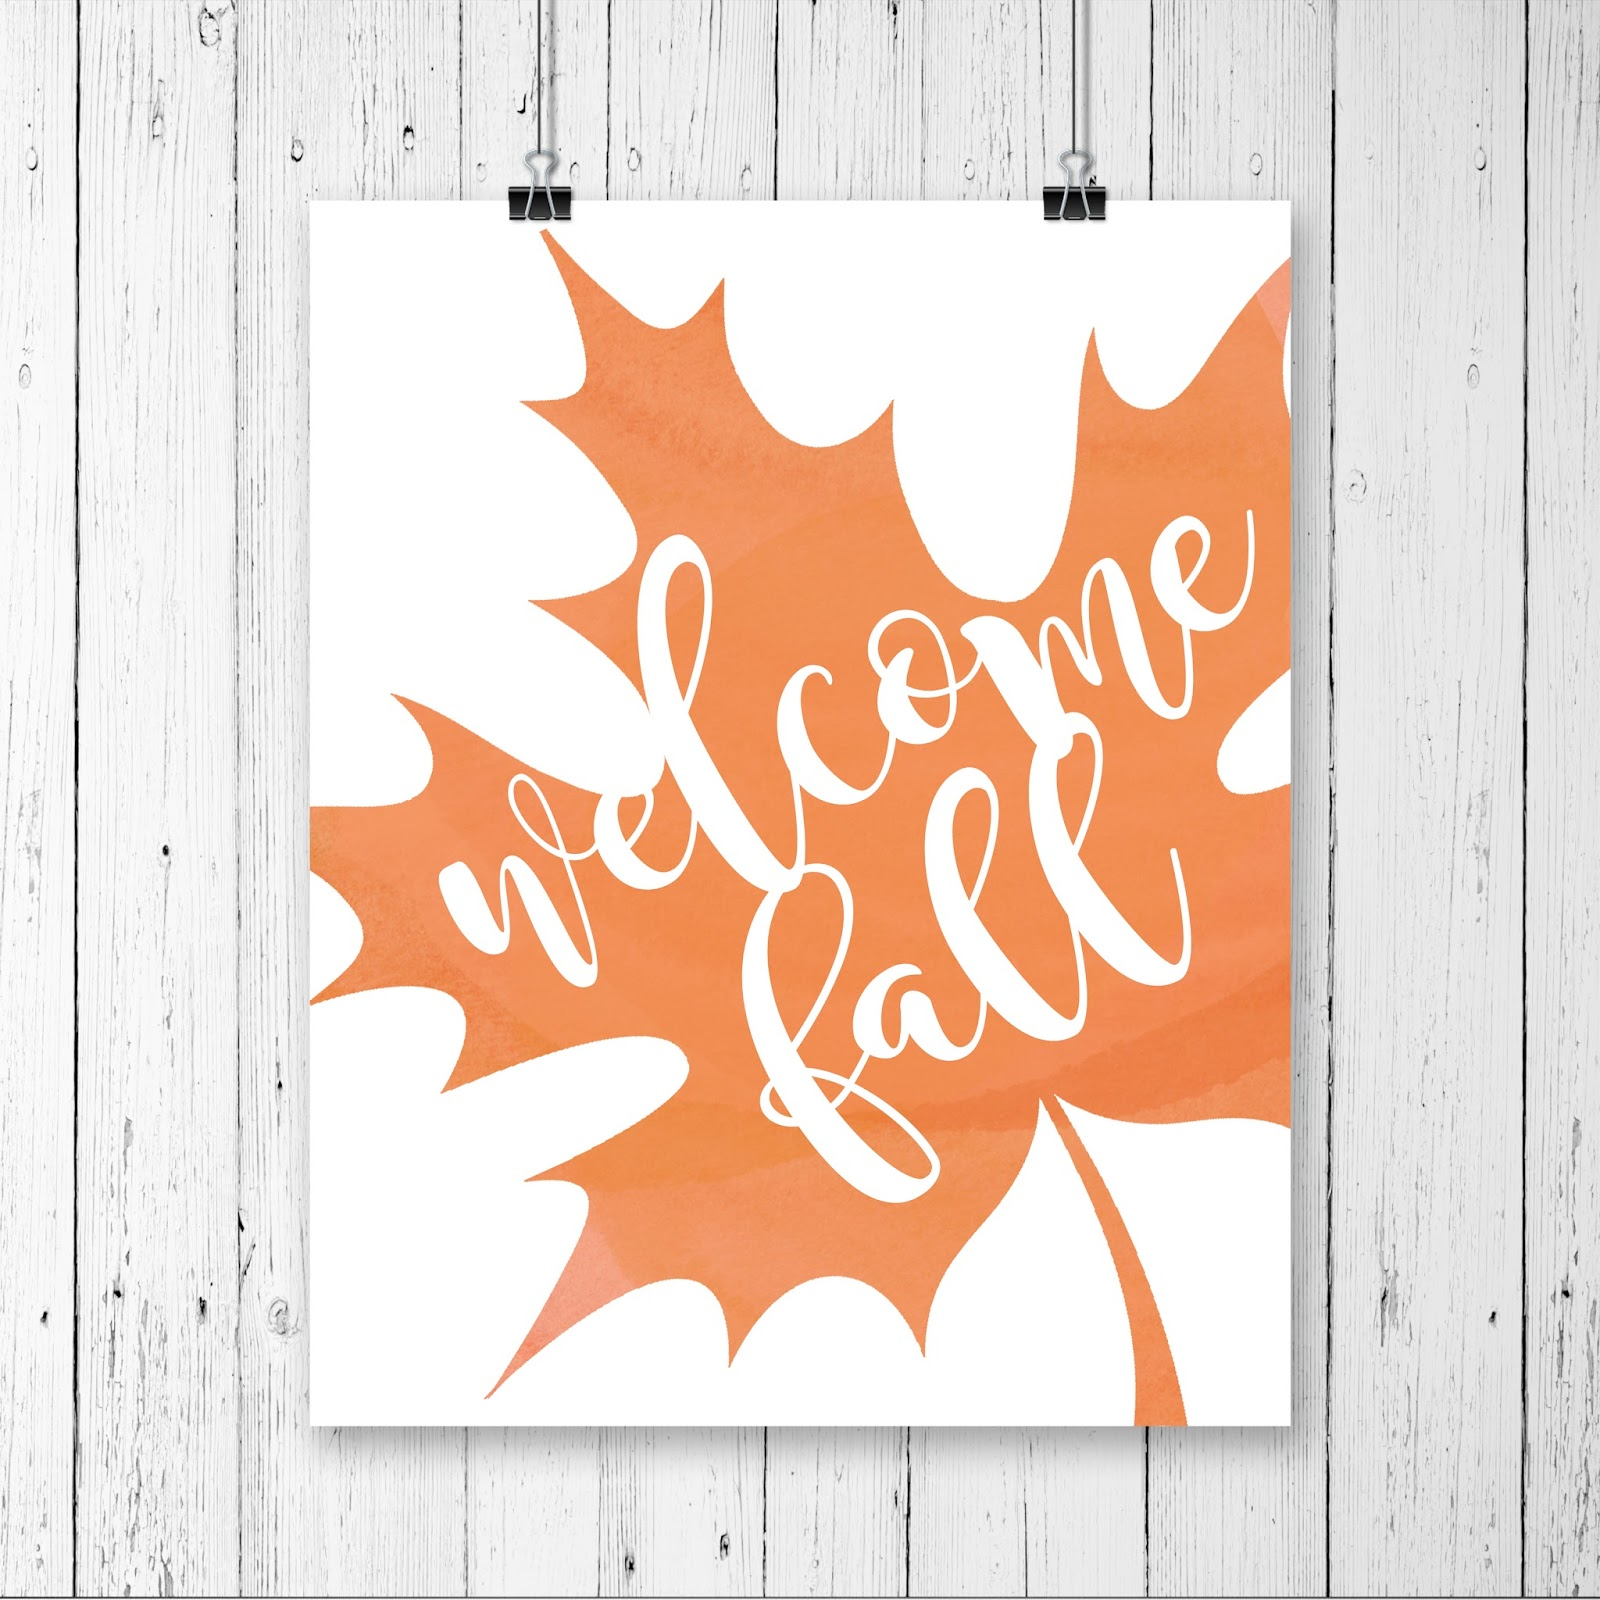 Download Inspirational Fall Sayings Clipart - Best Free Clipart ...